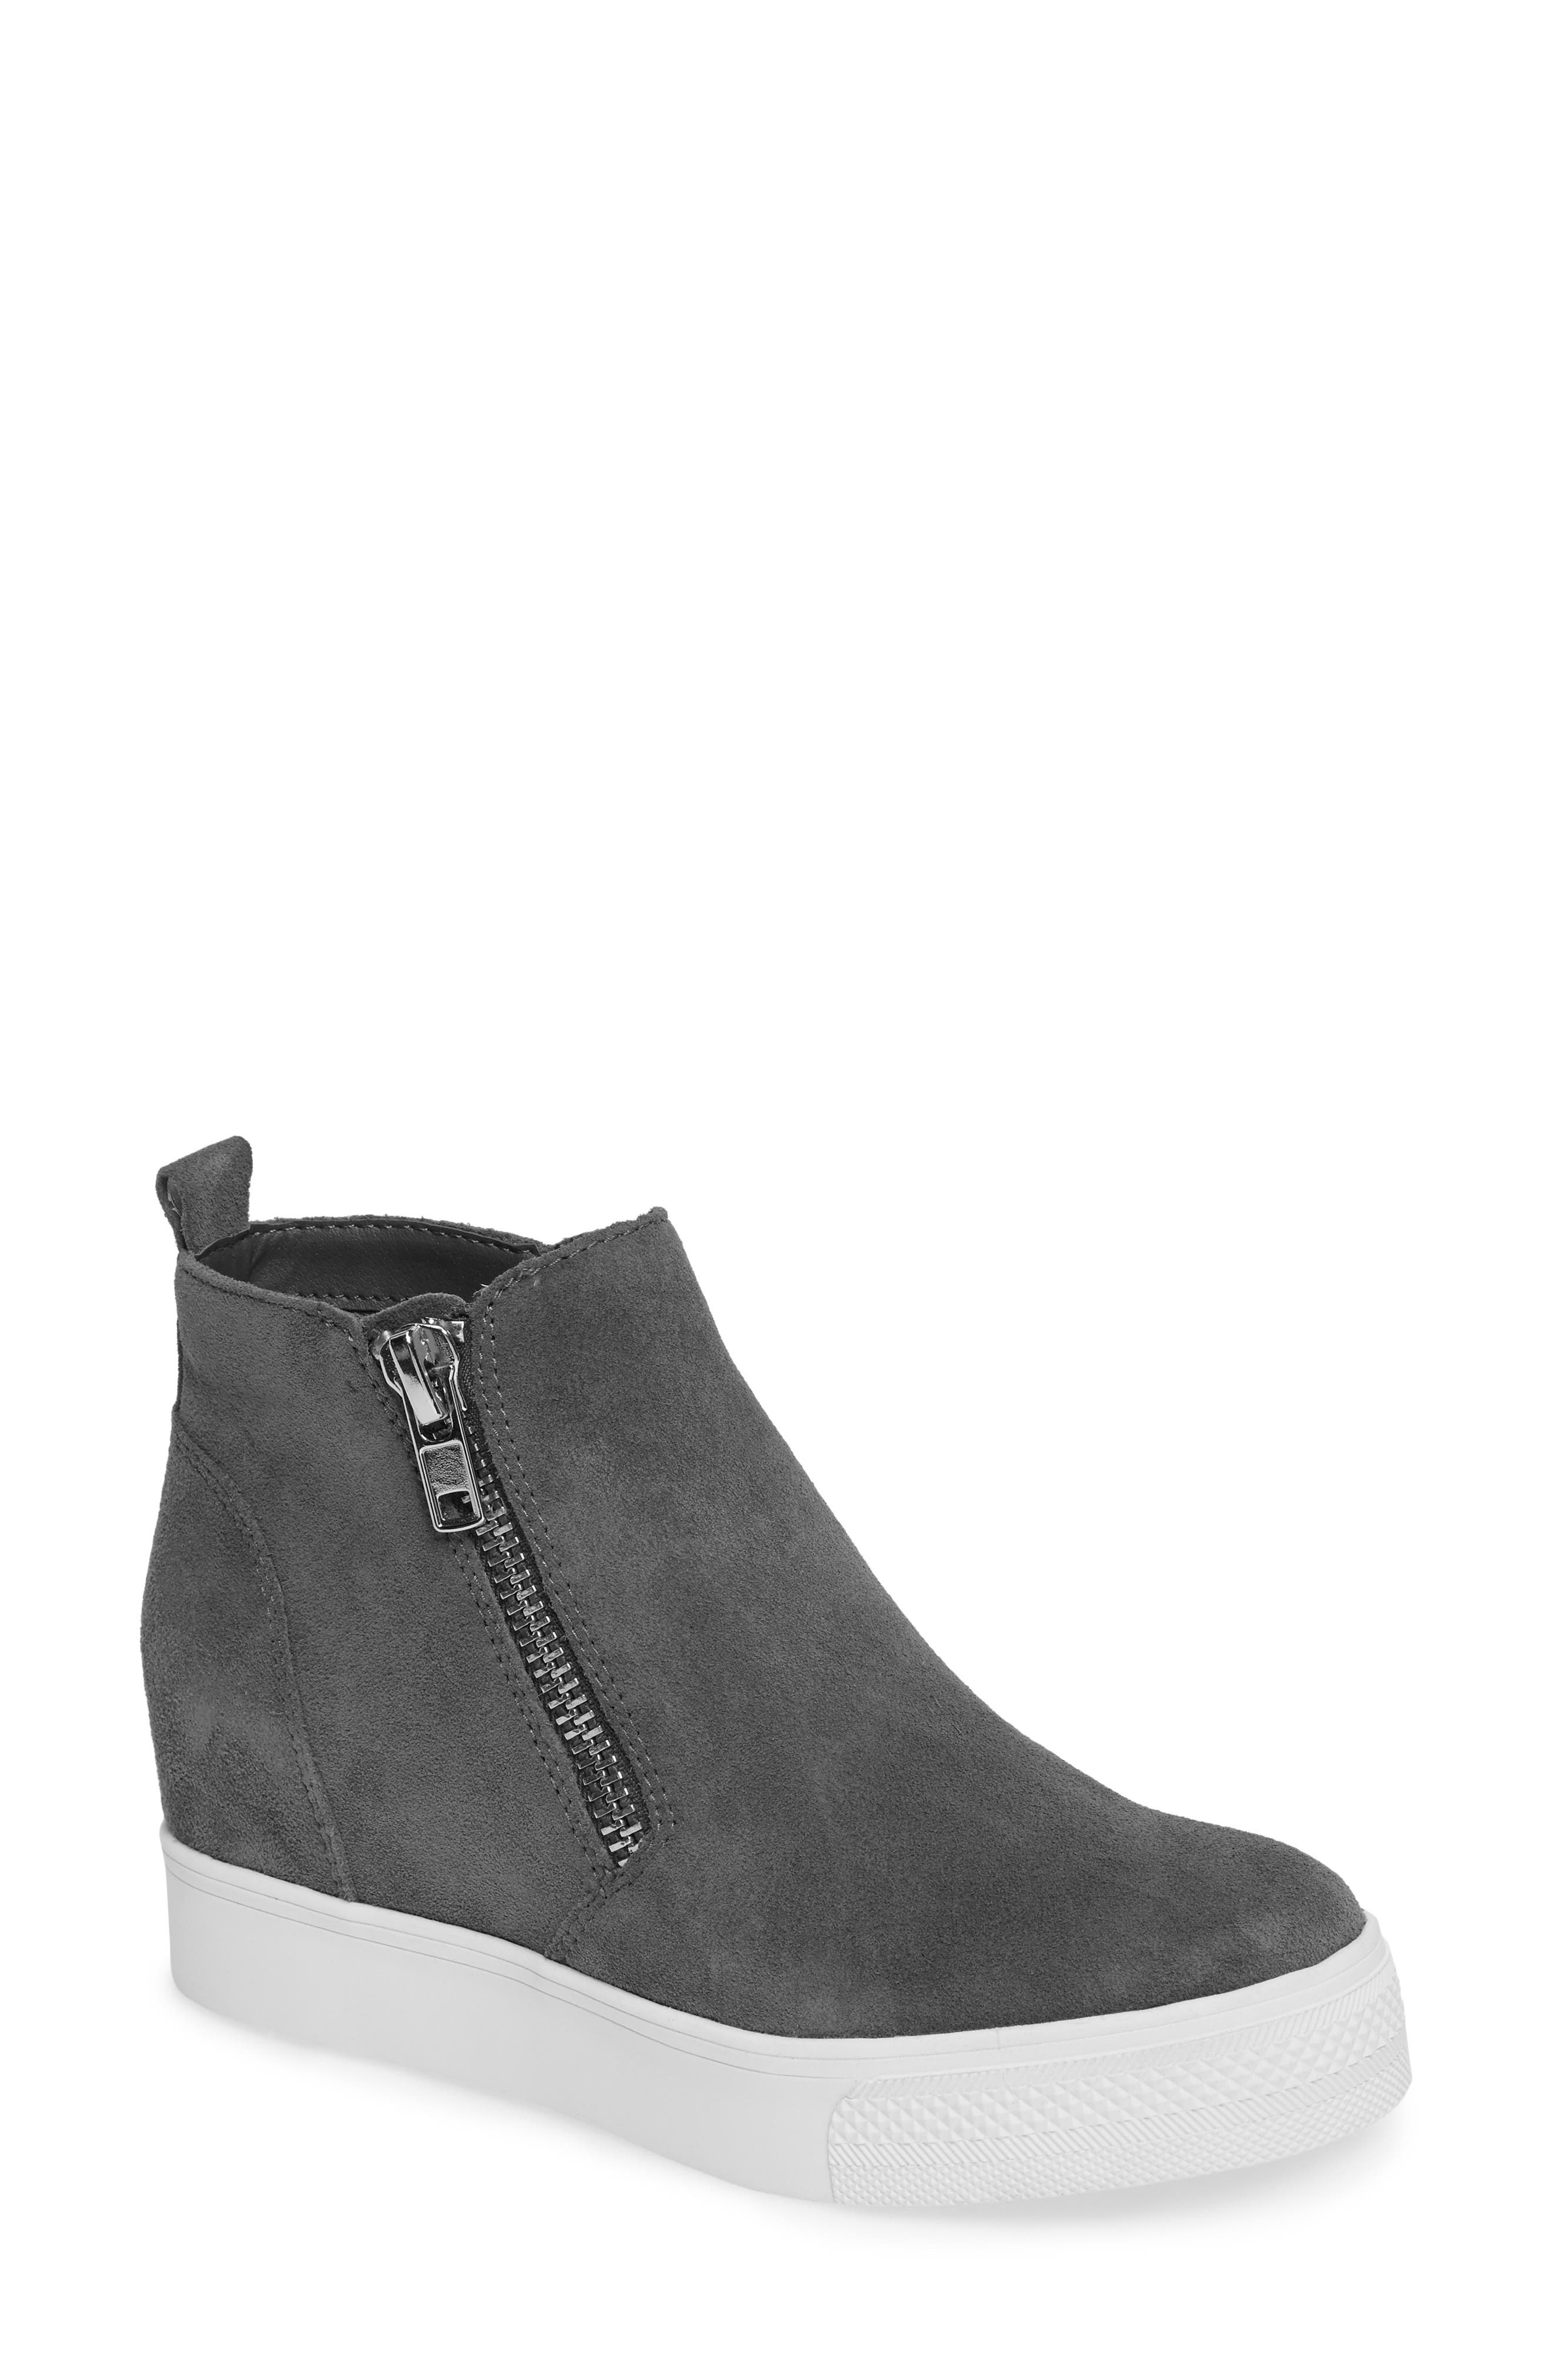 Main Image - Steve Madden Wedgie High Top Platform Sneaker (Women)